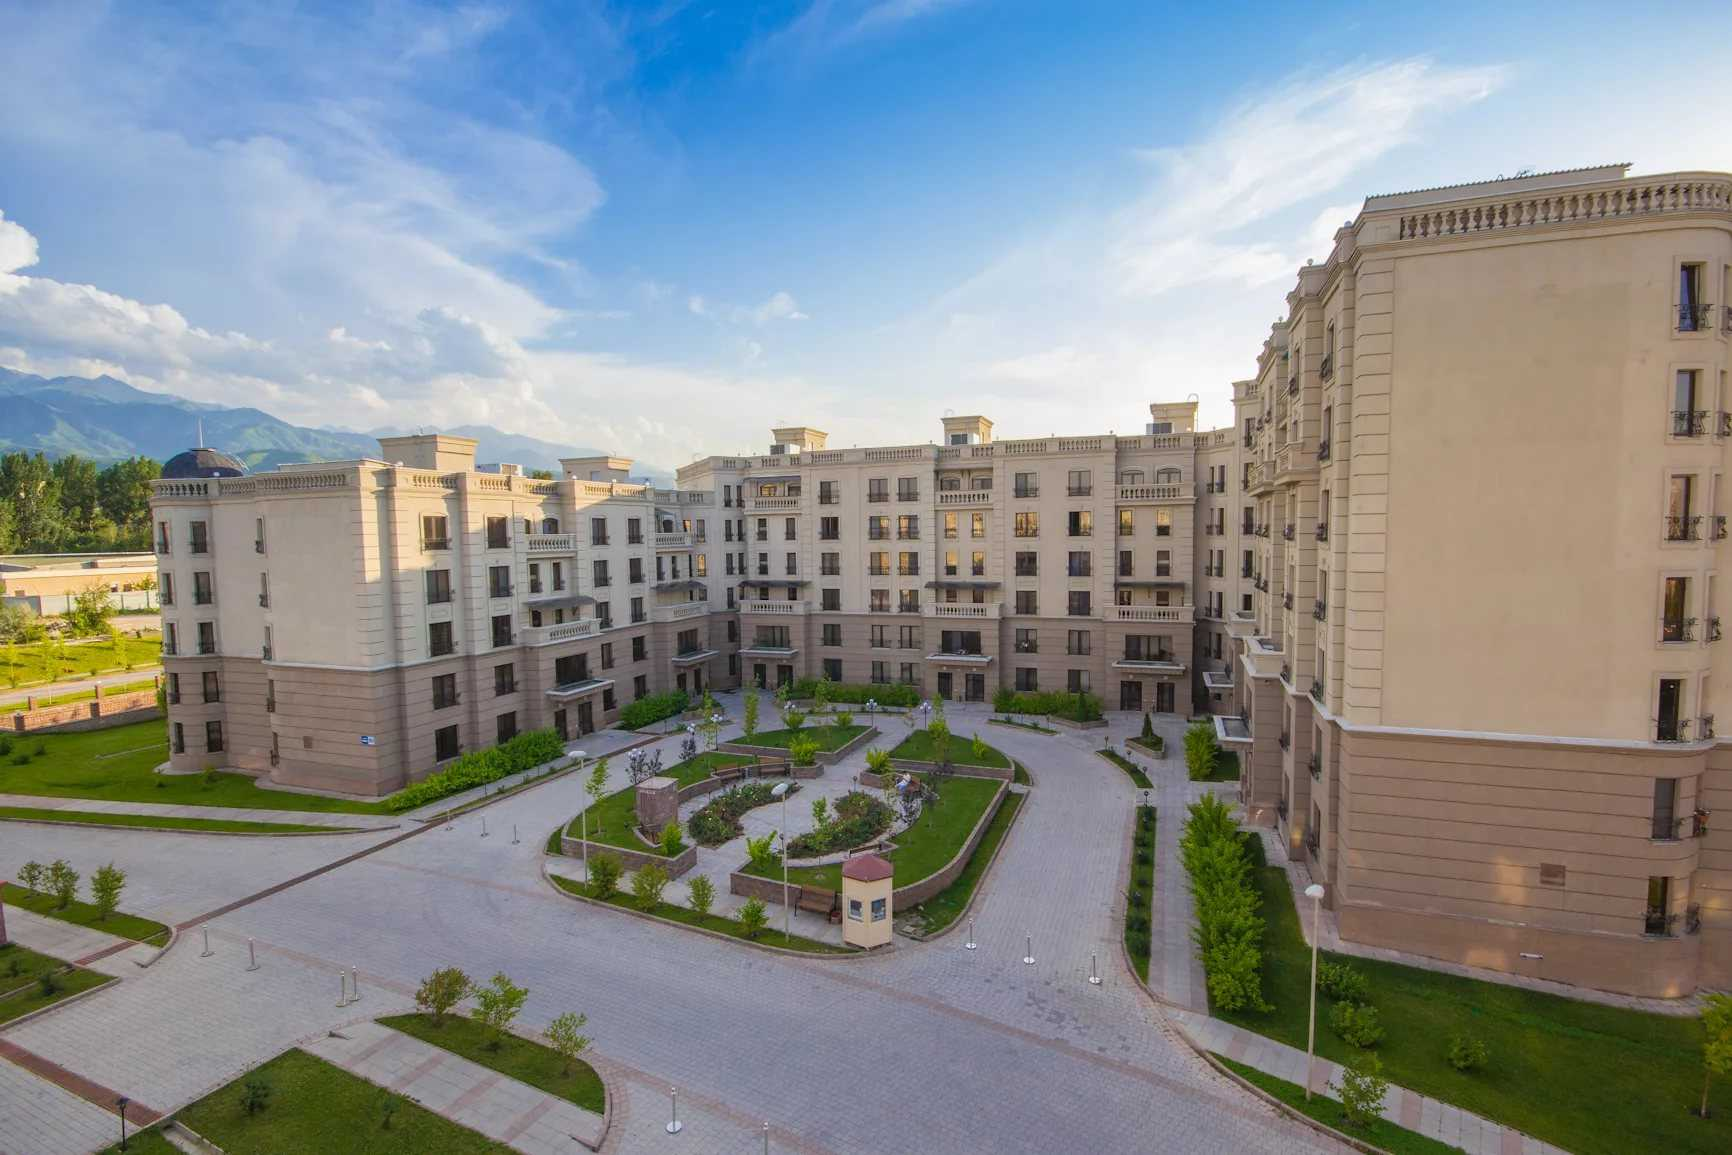 Sun valley residential complex